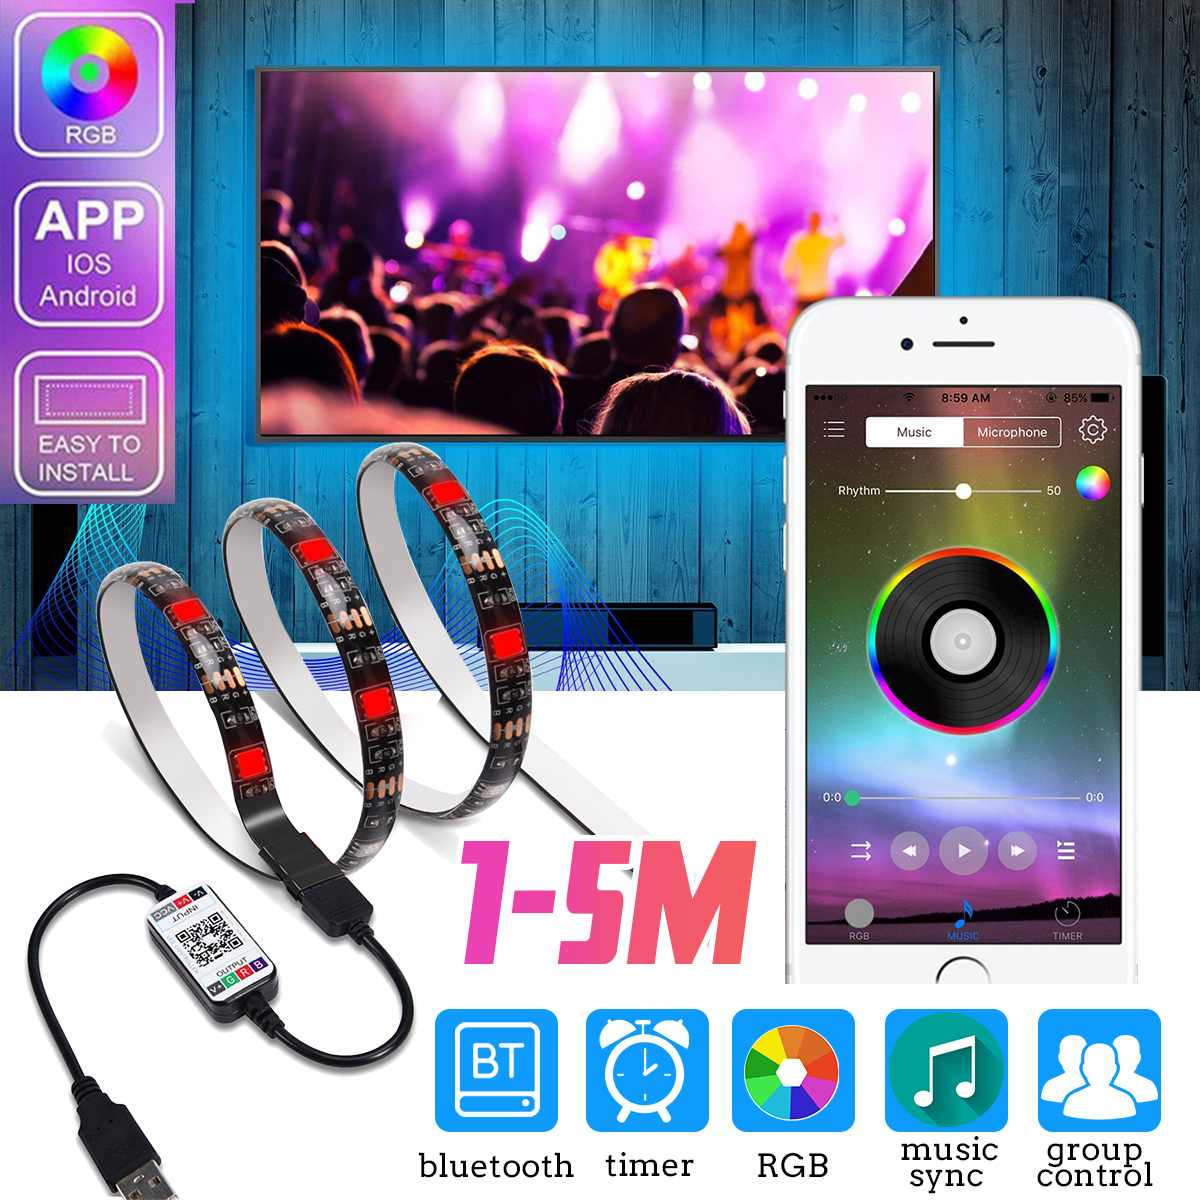 DC5V USB LED Strip RGB 1M 2M 3M 4M 5M Bluetooth APP Control Flexible Light TV Background Waterproof Tape For Apple And Android